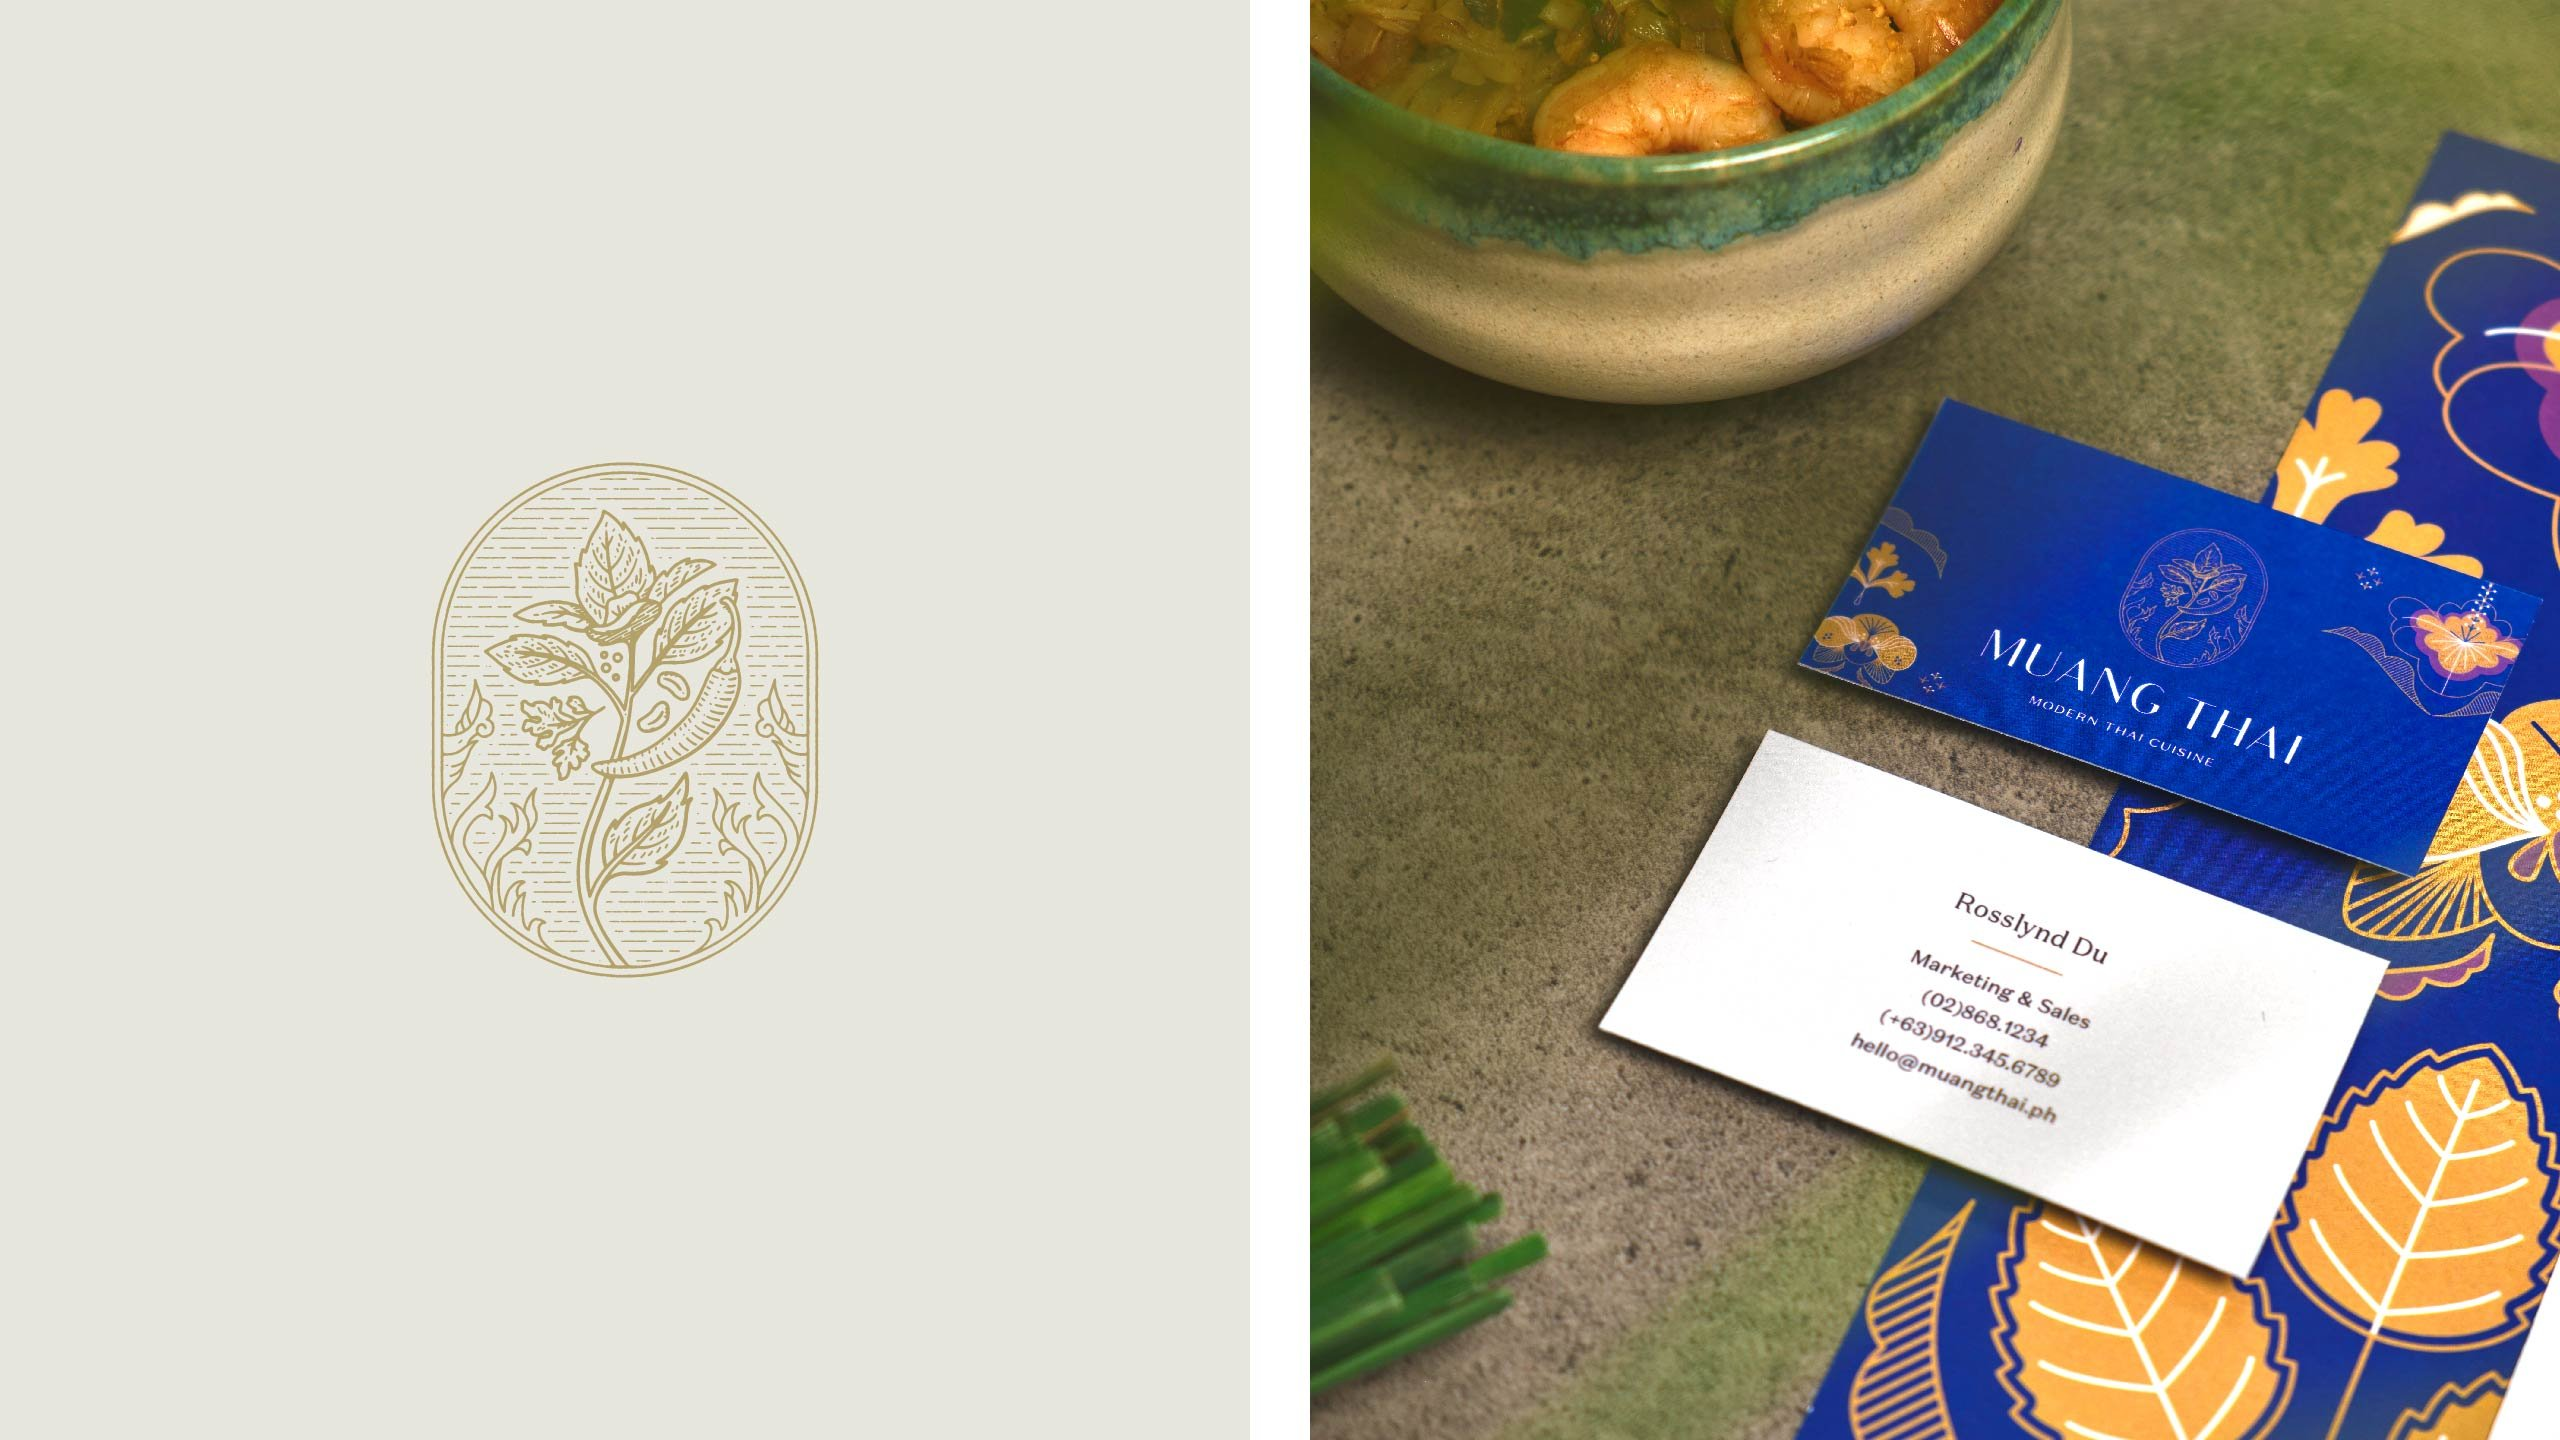 The Muang Thai logo inspired by Thai spices applied on the brand's company card